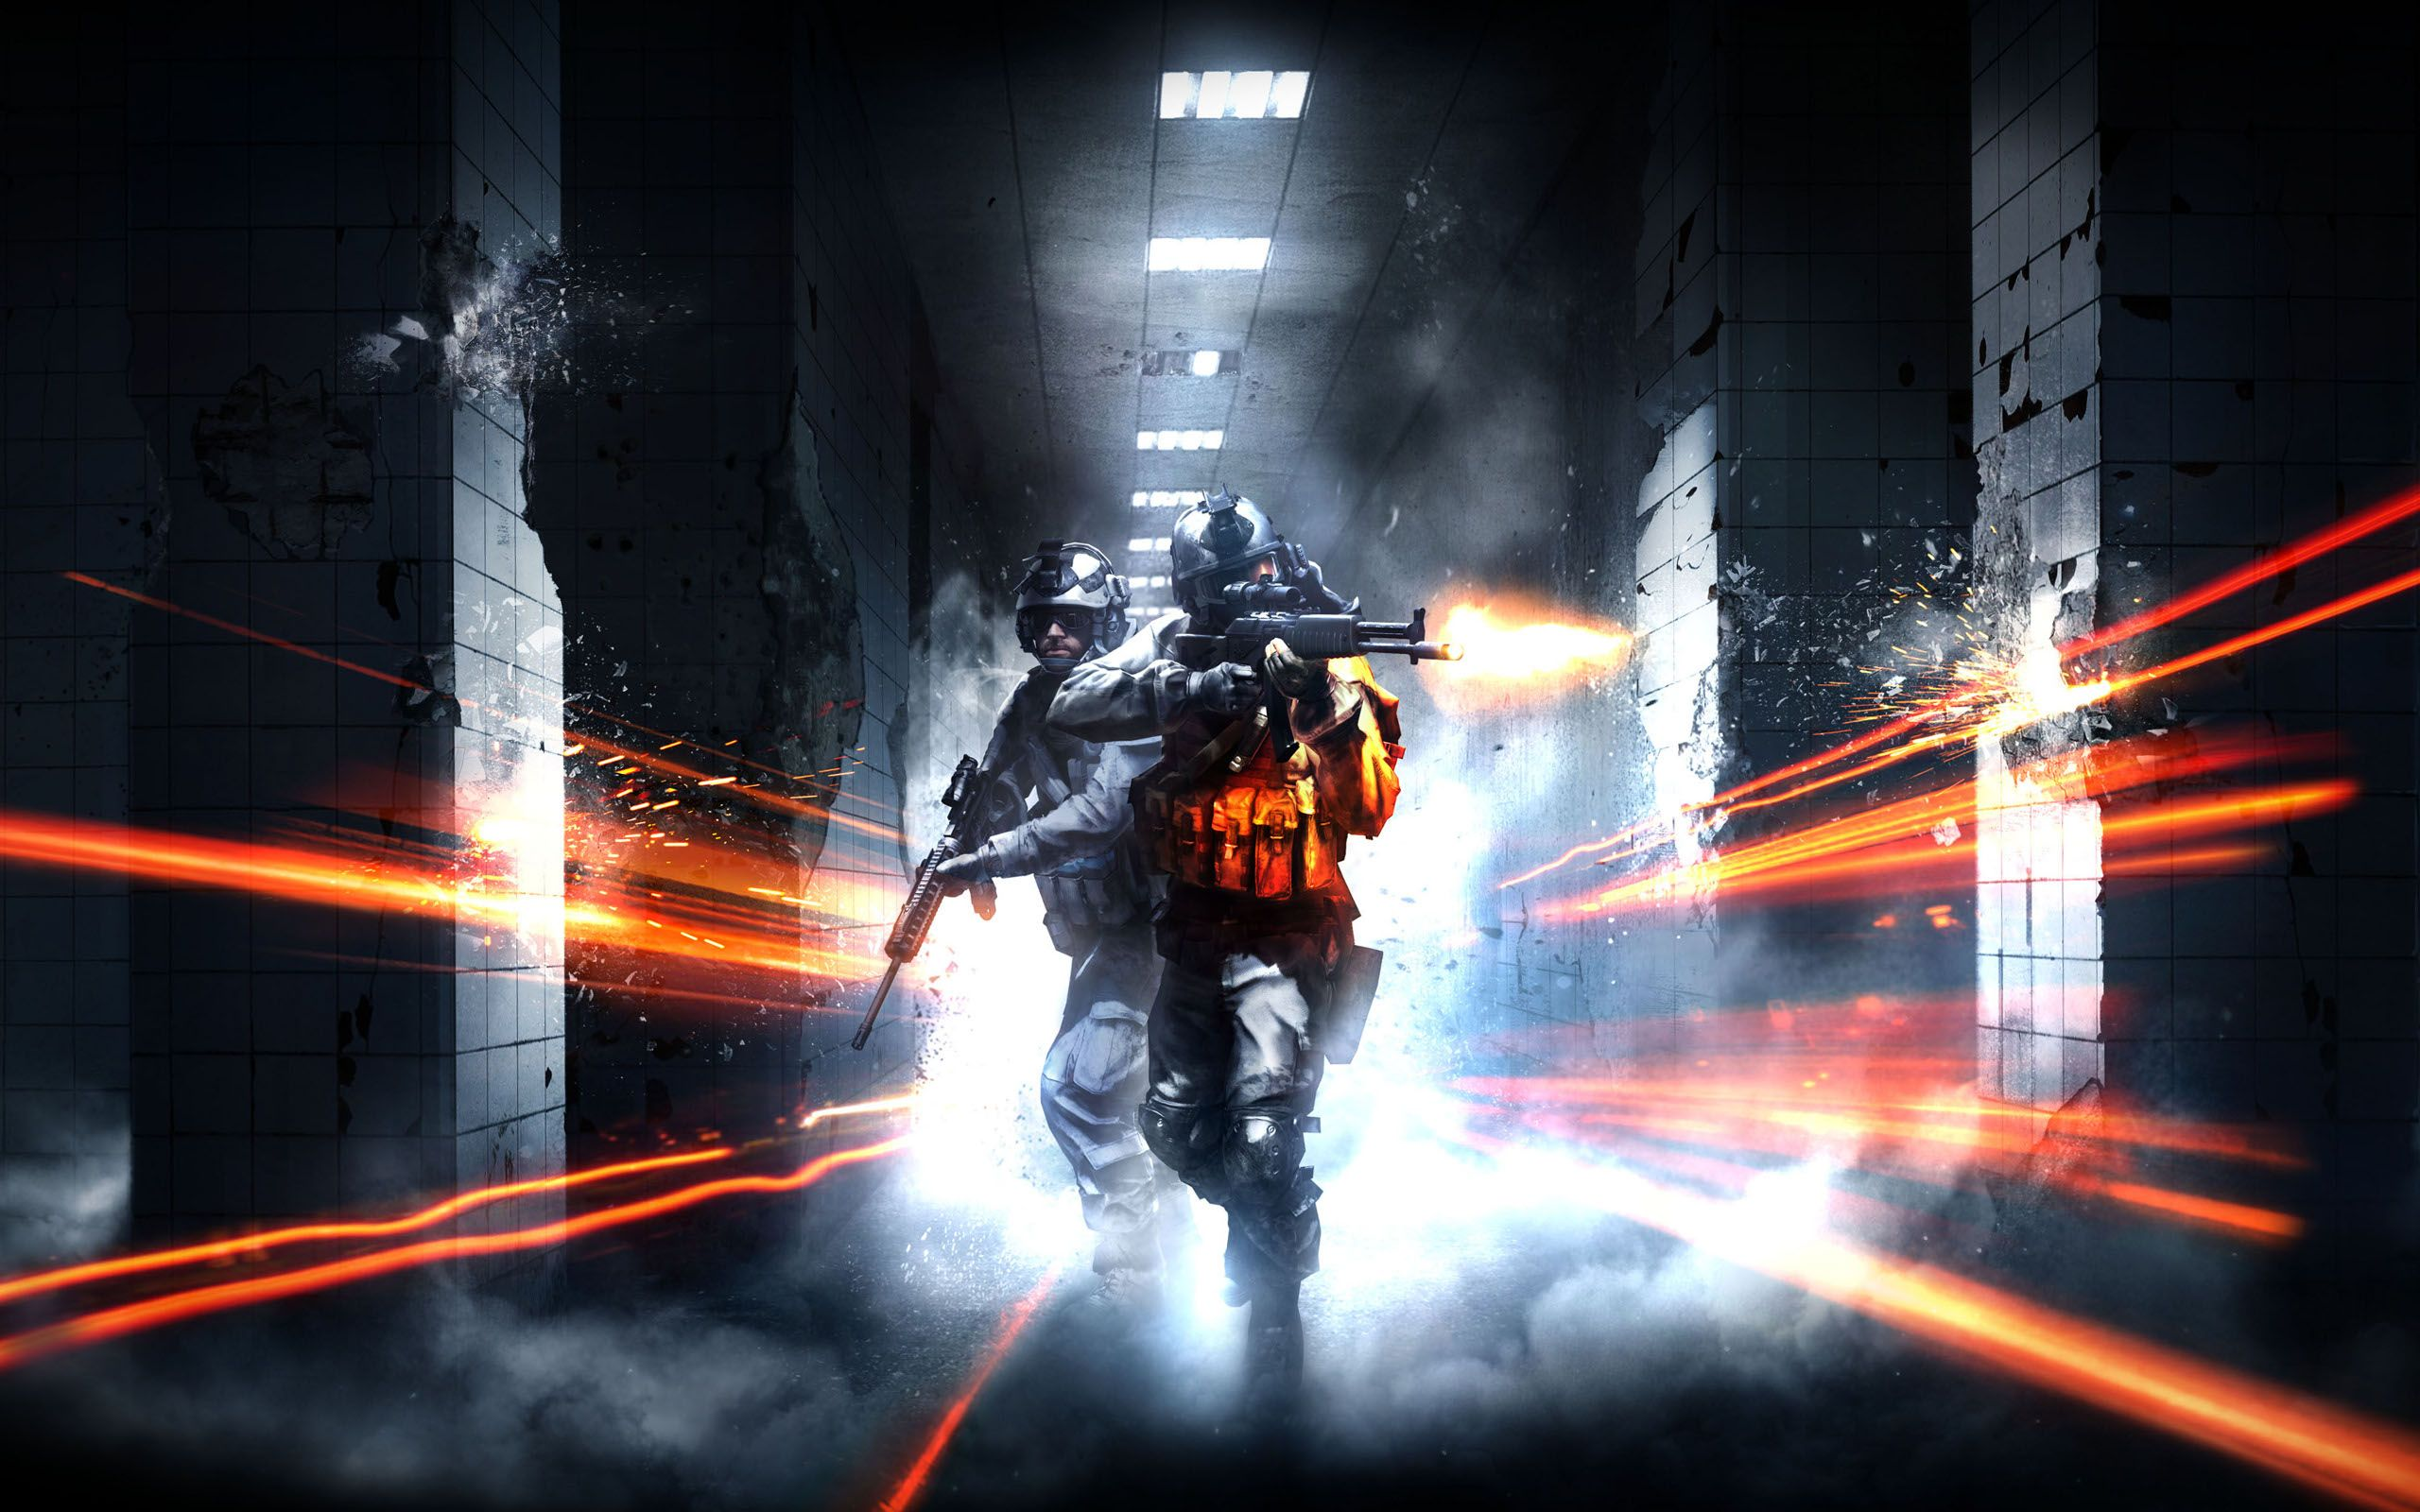 Battlefield 3 Wallpaper HD Images Collection LLGL